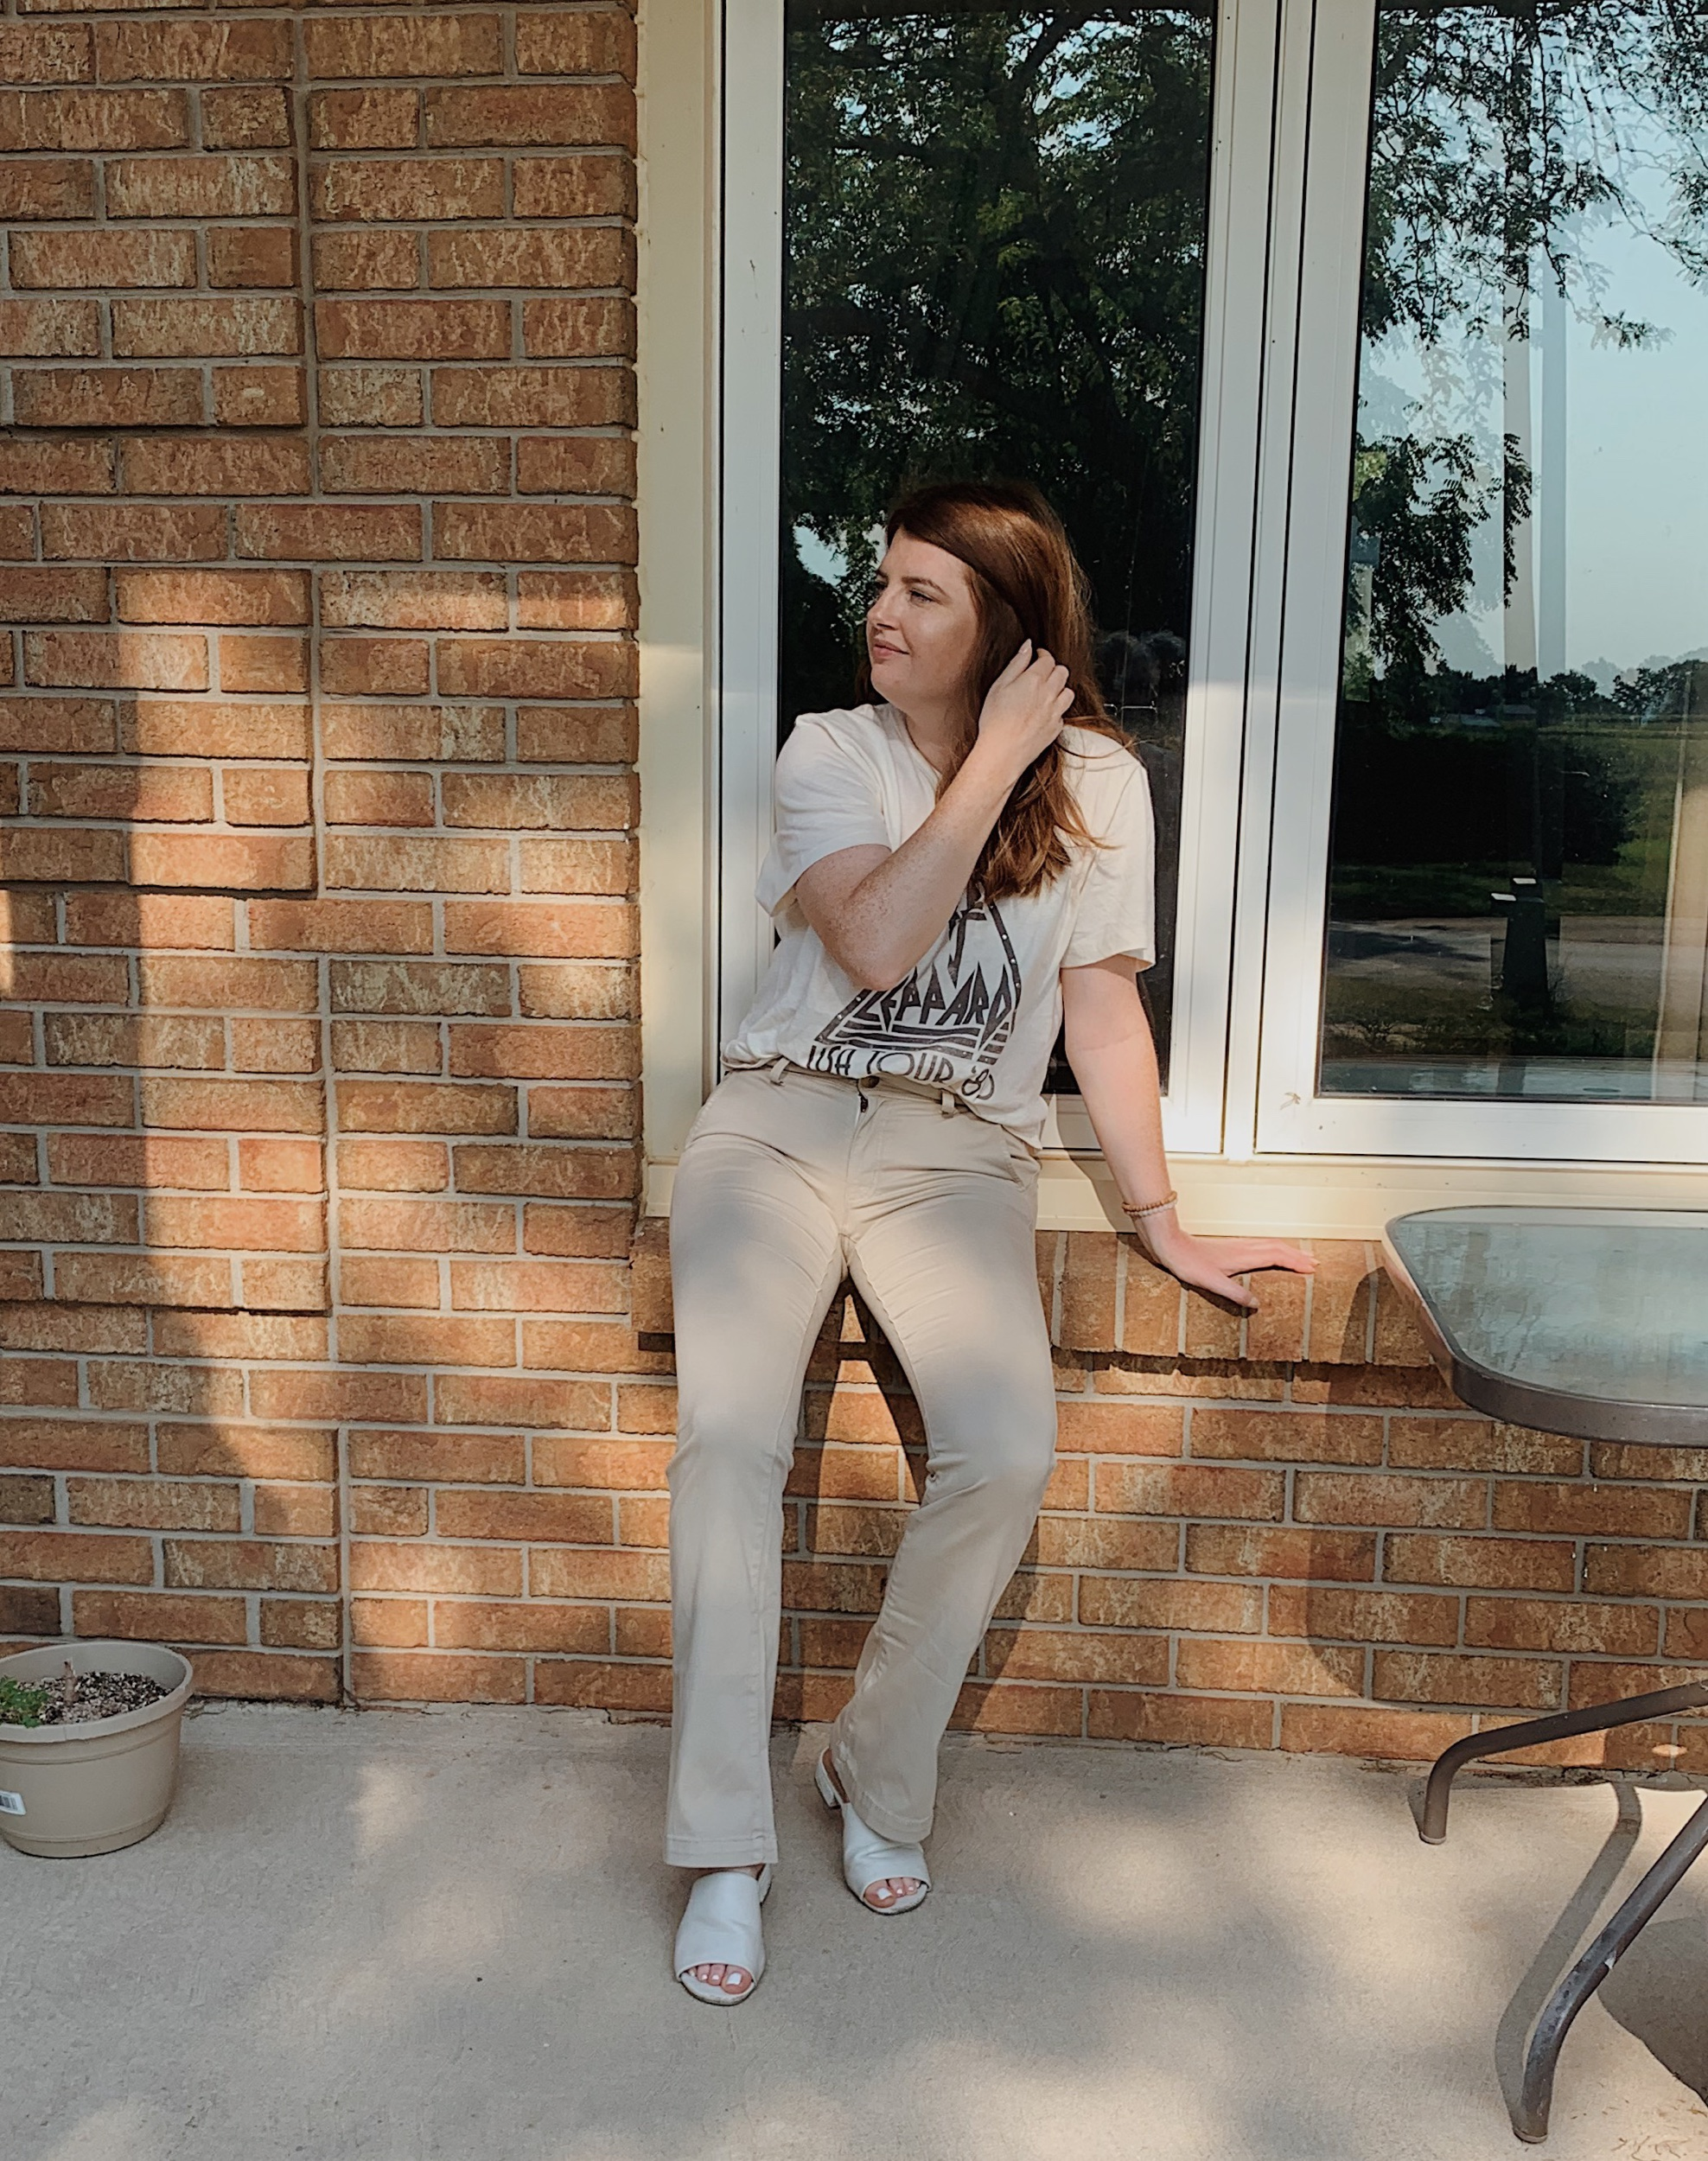 Wearing Graphic Tee and Fared Pants from American Eagle